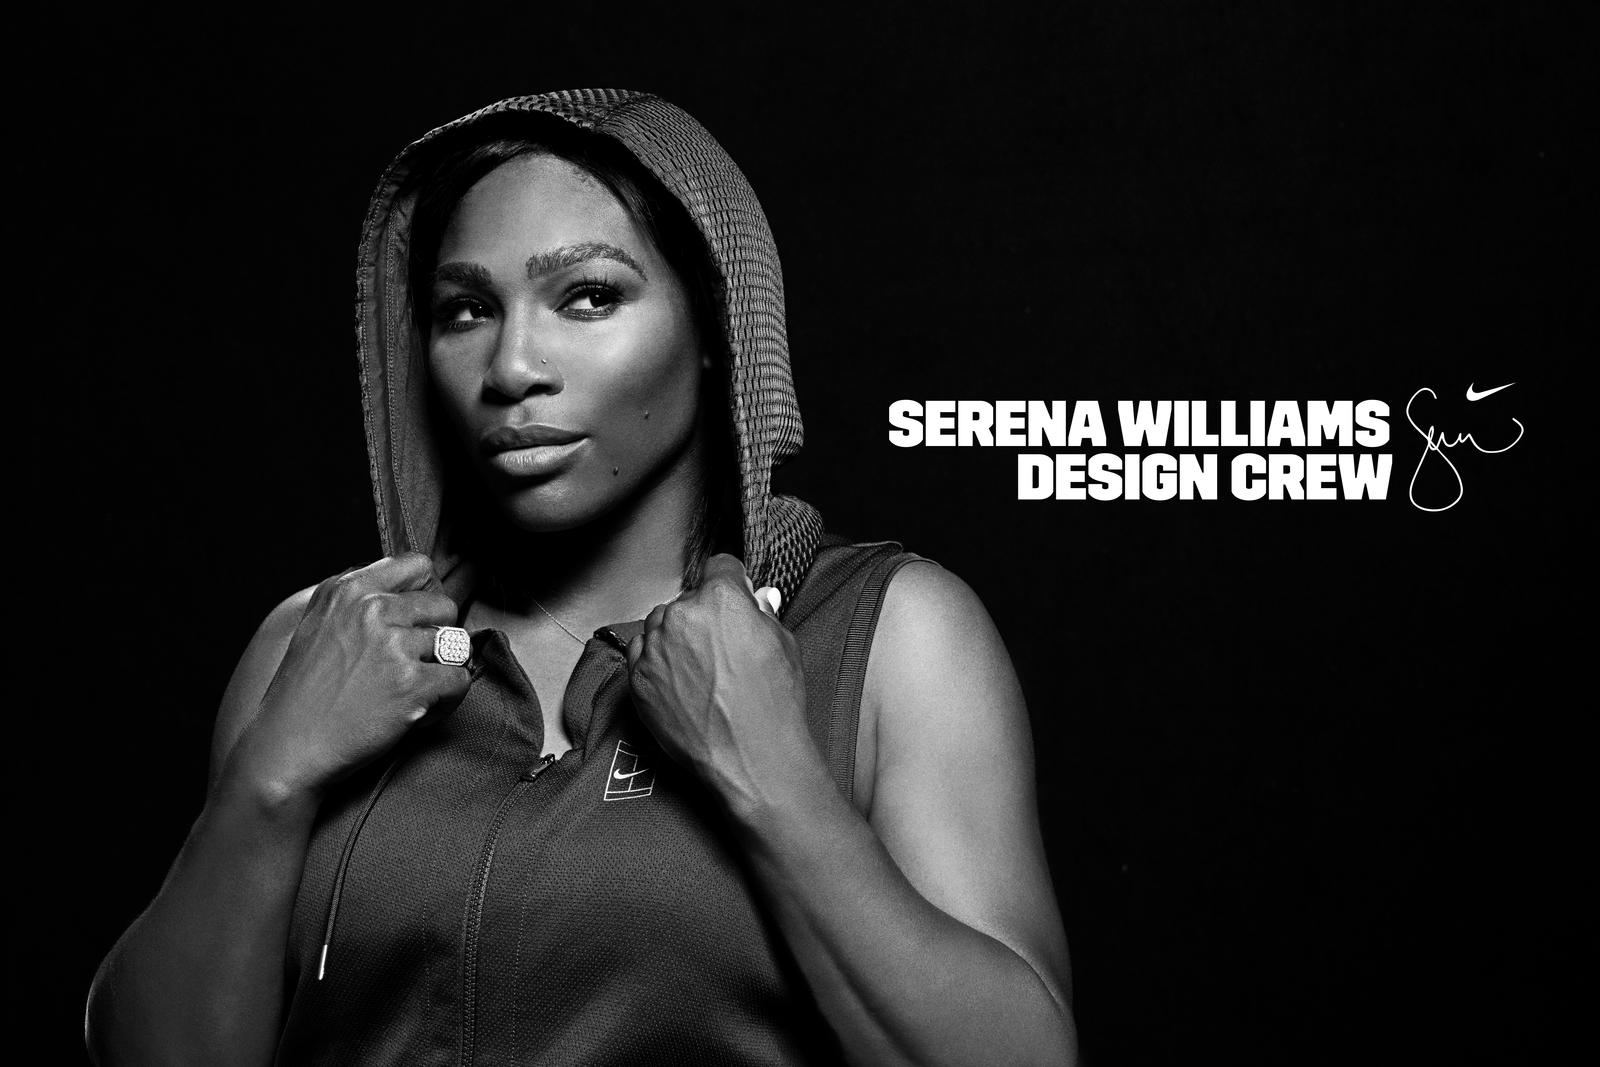 Serena Williams Design Crew 0